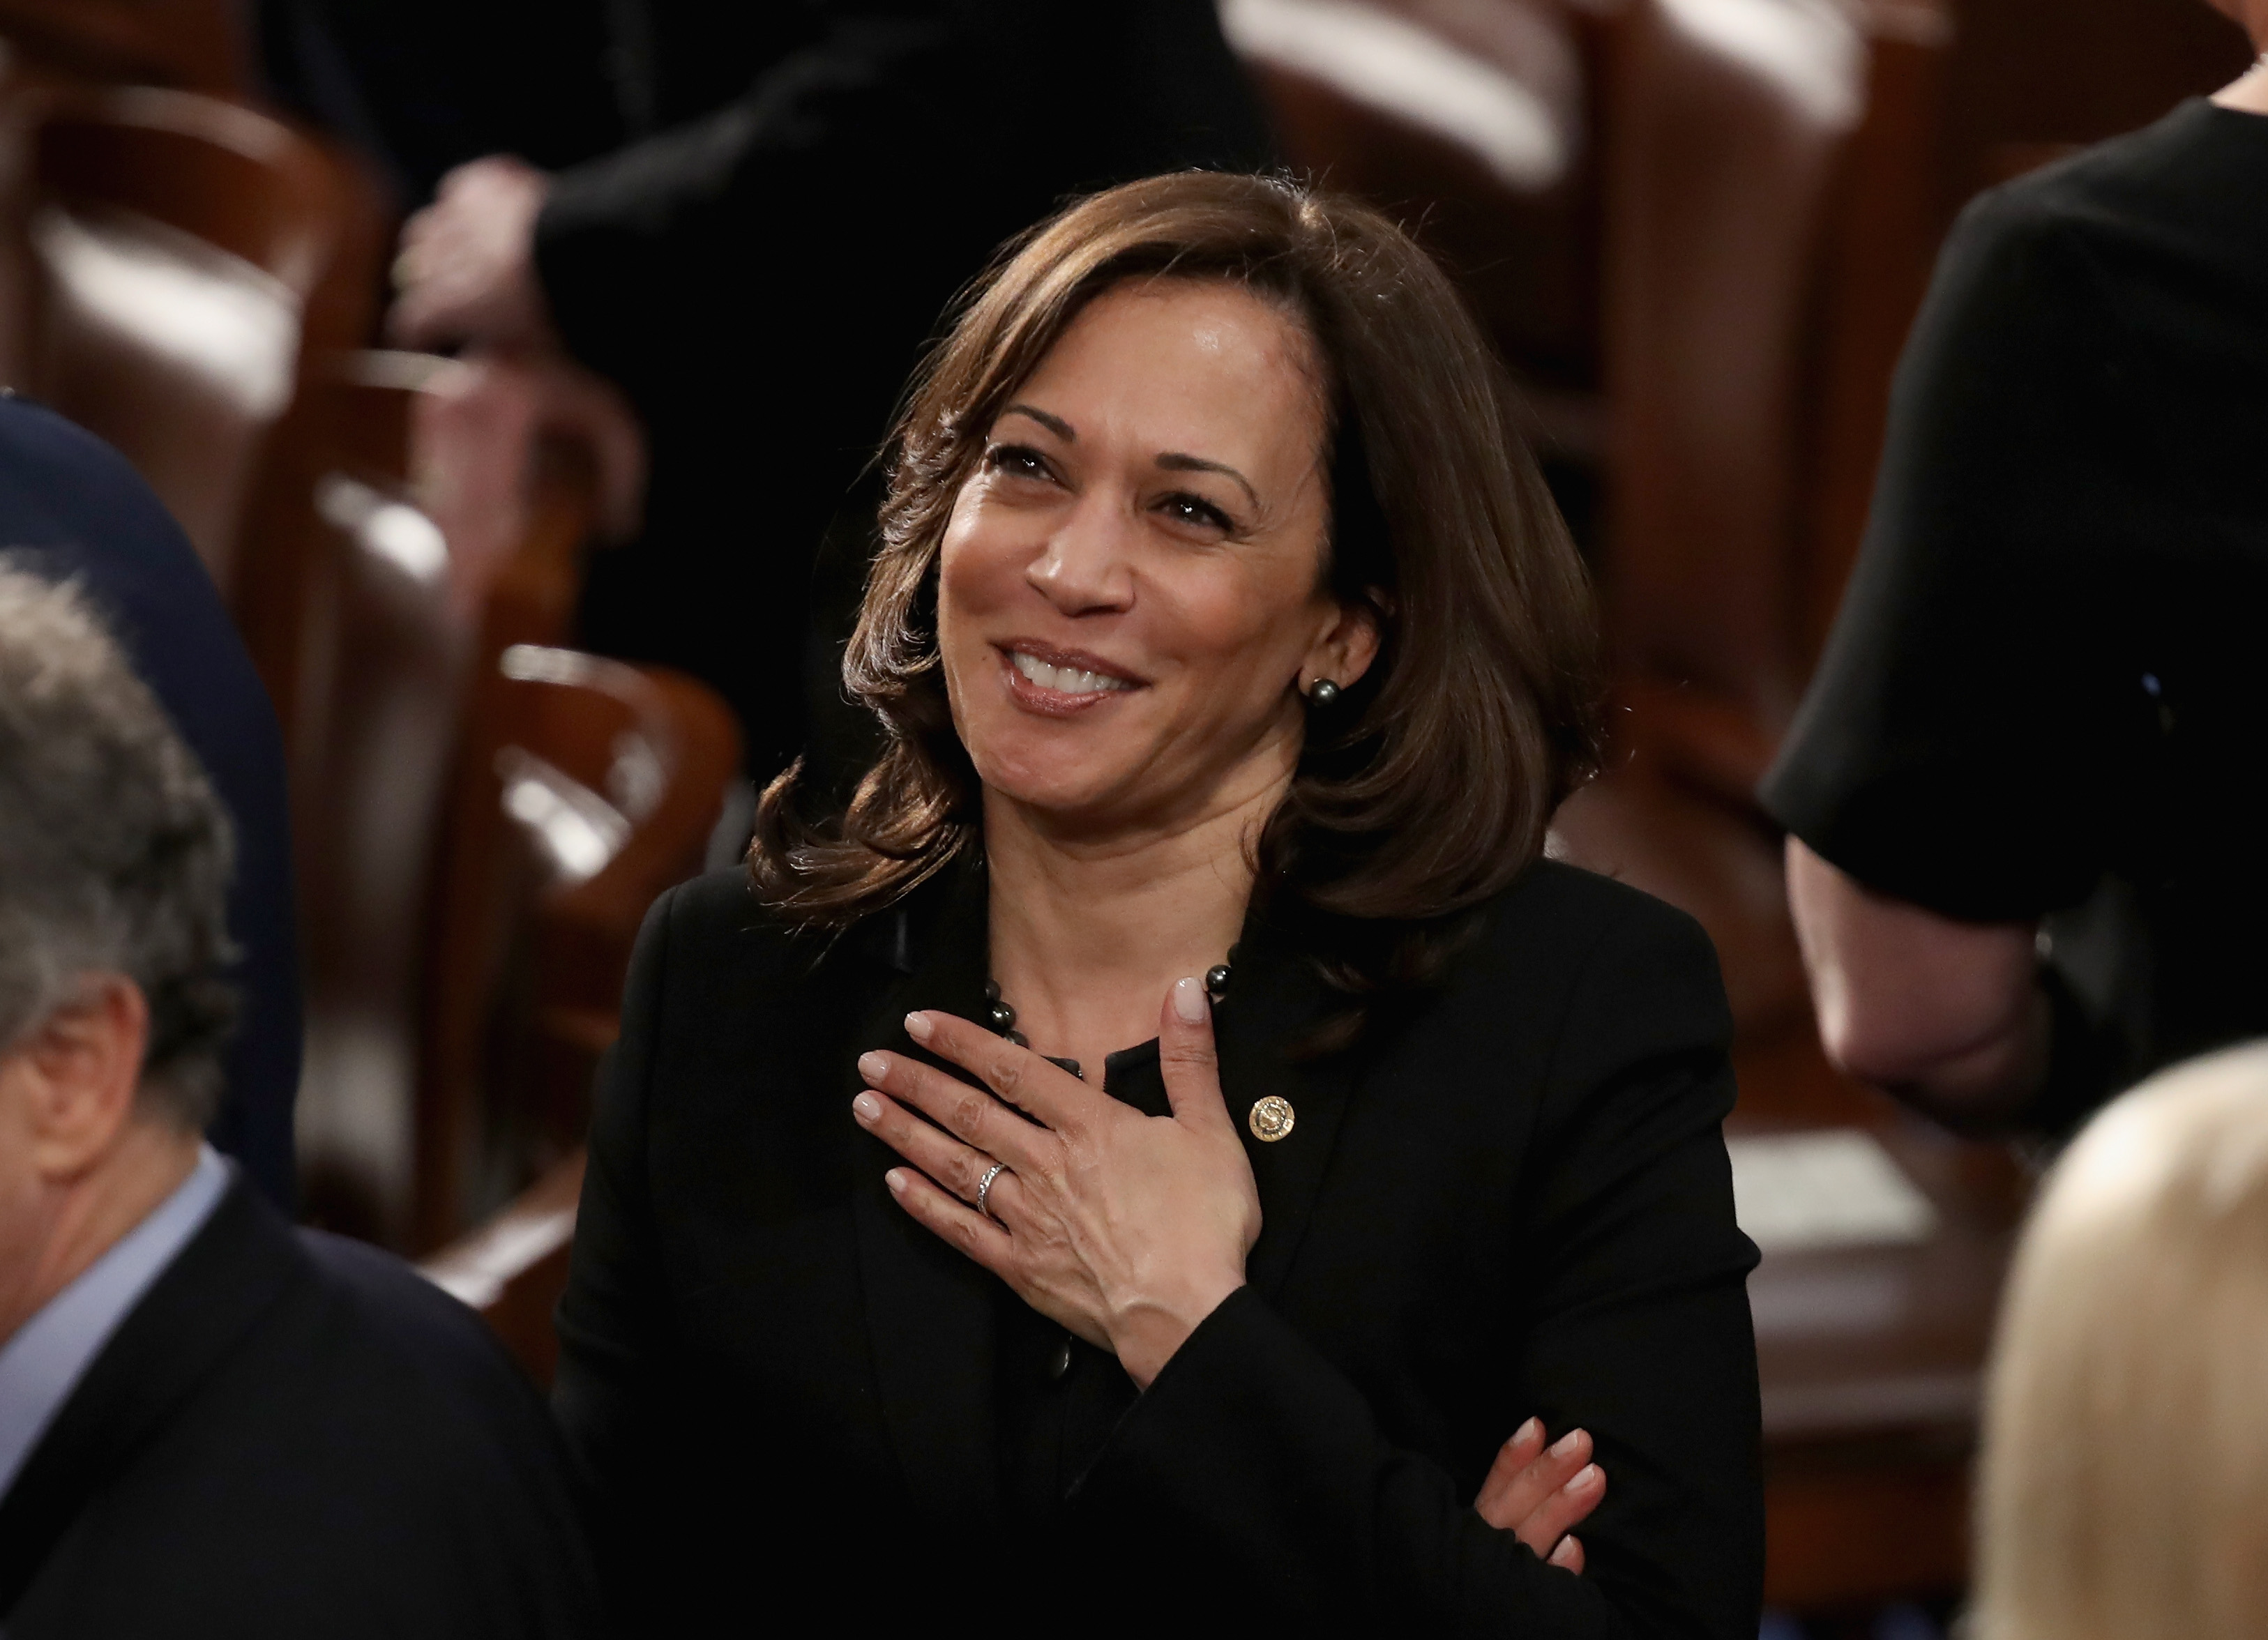 WASHINGTON, DC - FEBRUARY 05: Sen. Kamala Harris (D-CA) greets fellow lawmakers ahead of the State of the Union address in the chamber of the U.S. House of Representatives on February 5, 2019 in Washington, DC. President Trump's second State of the Union address was postponed one week due to the partial government shutdown. (Win McNamee/Getty Images)